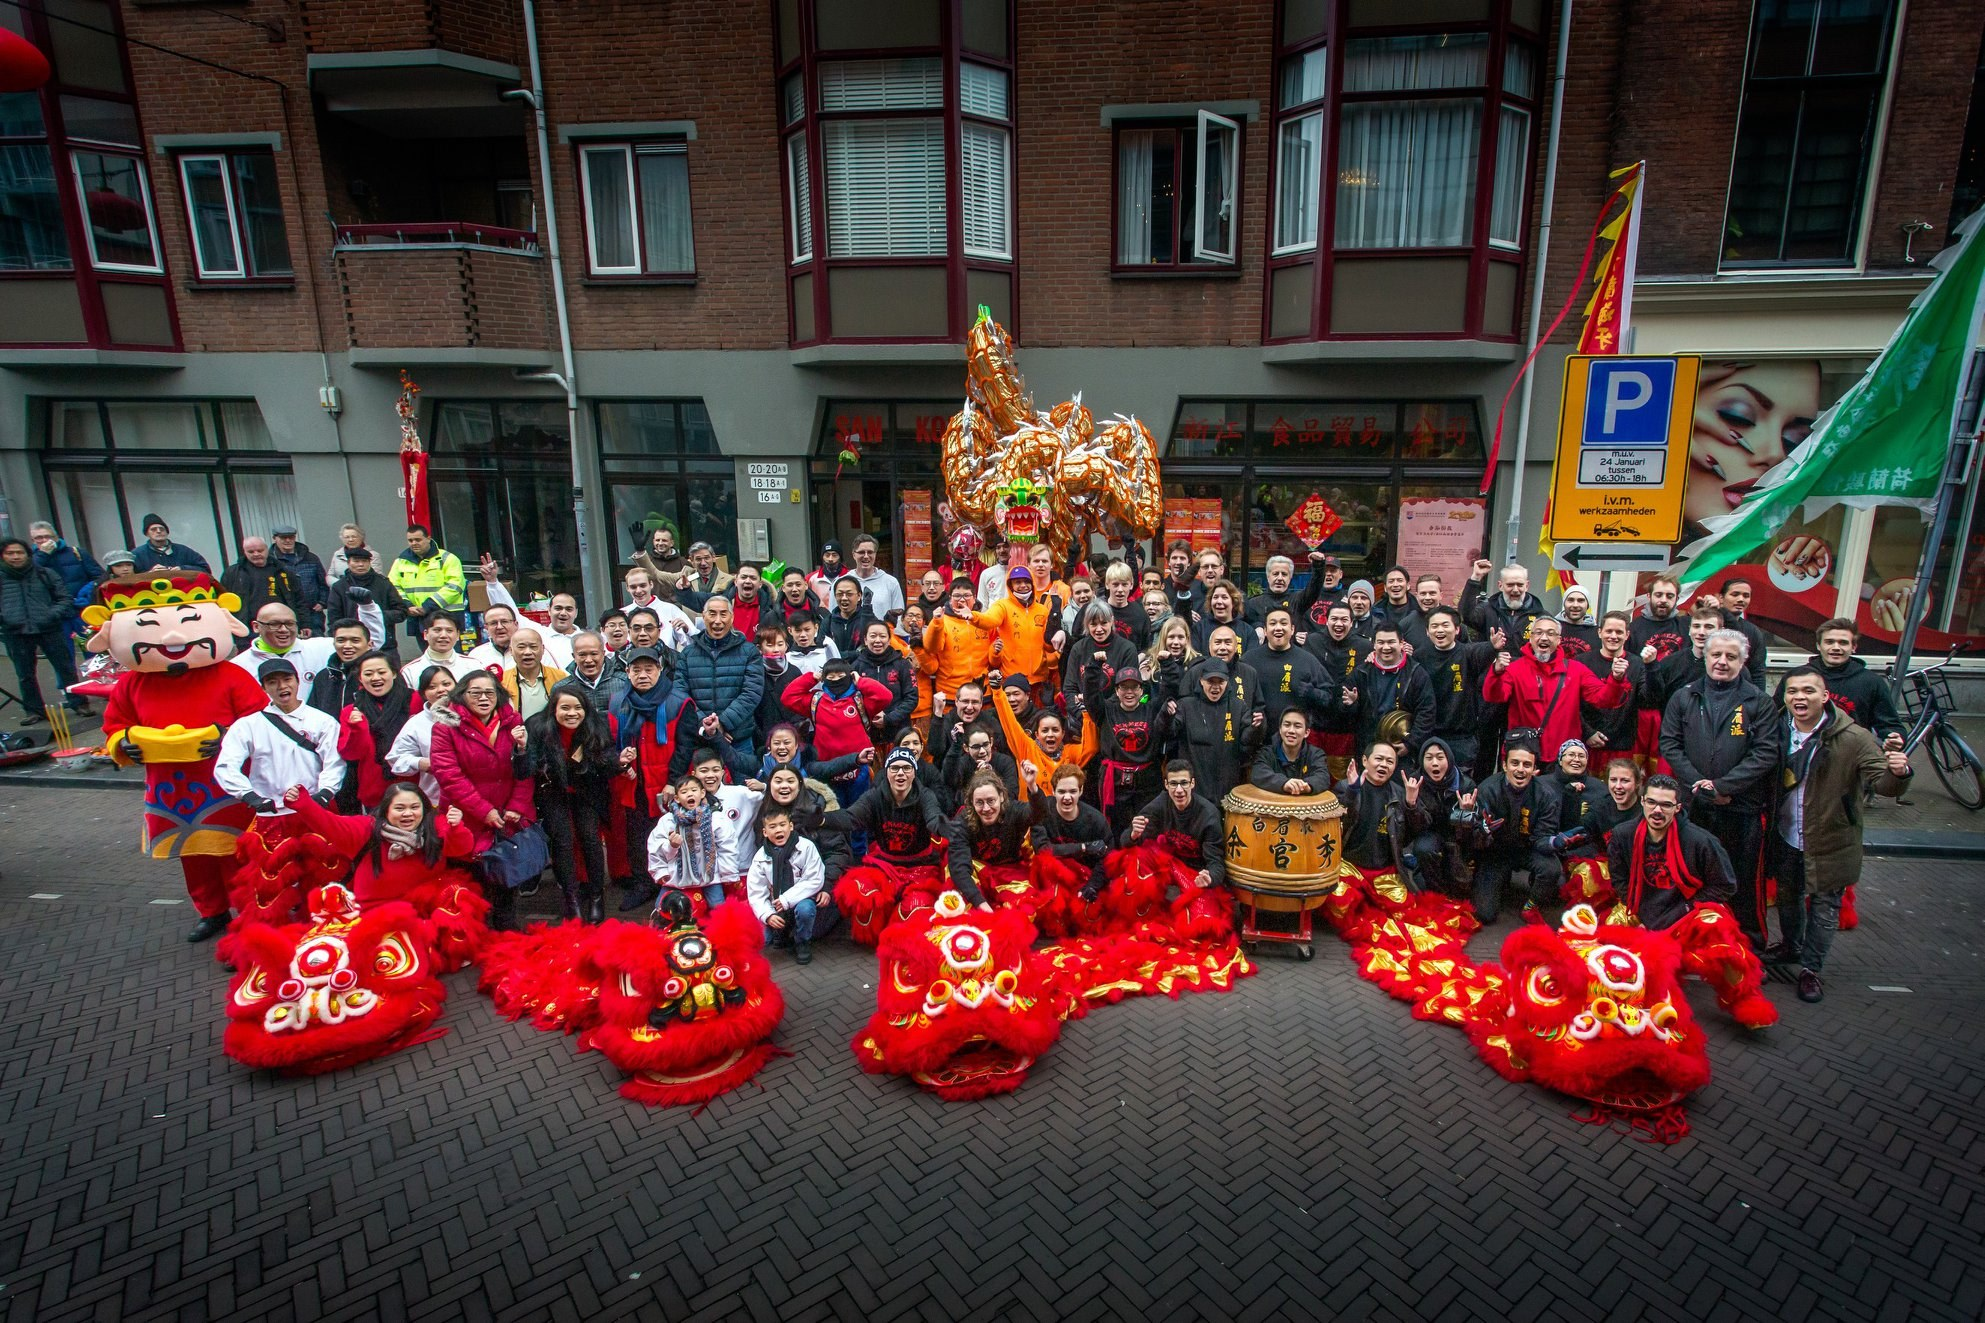 Group photo lion dance the hague netherlands